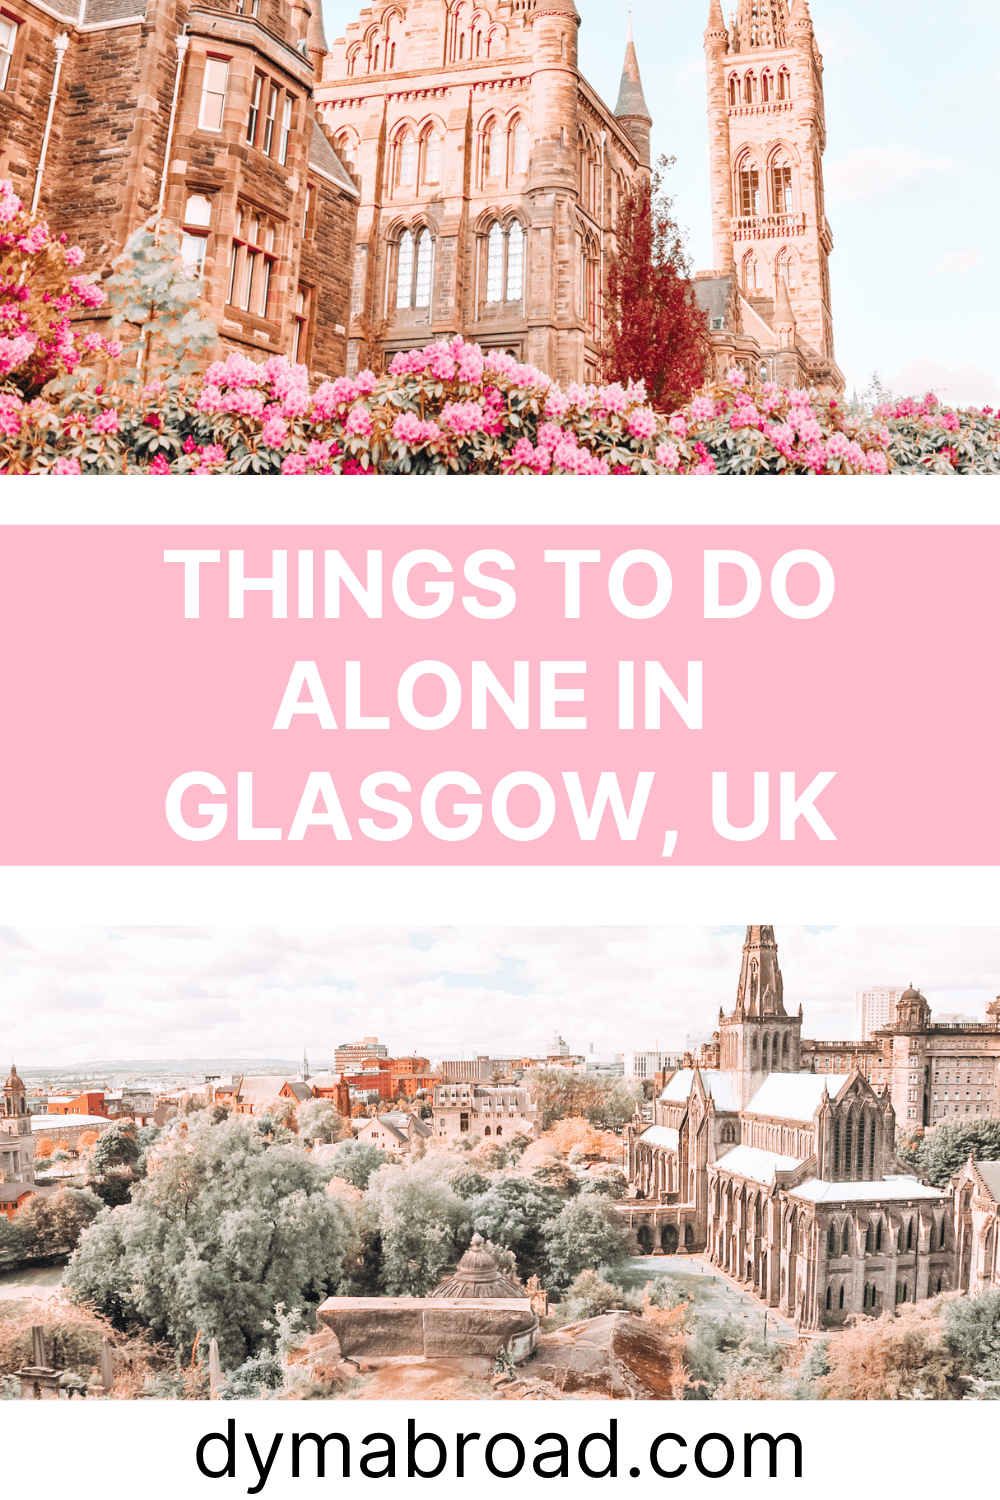 Things to do alone in Glasgow second Pinterest image